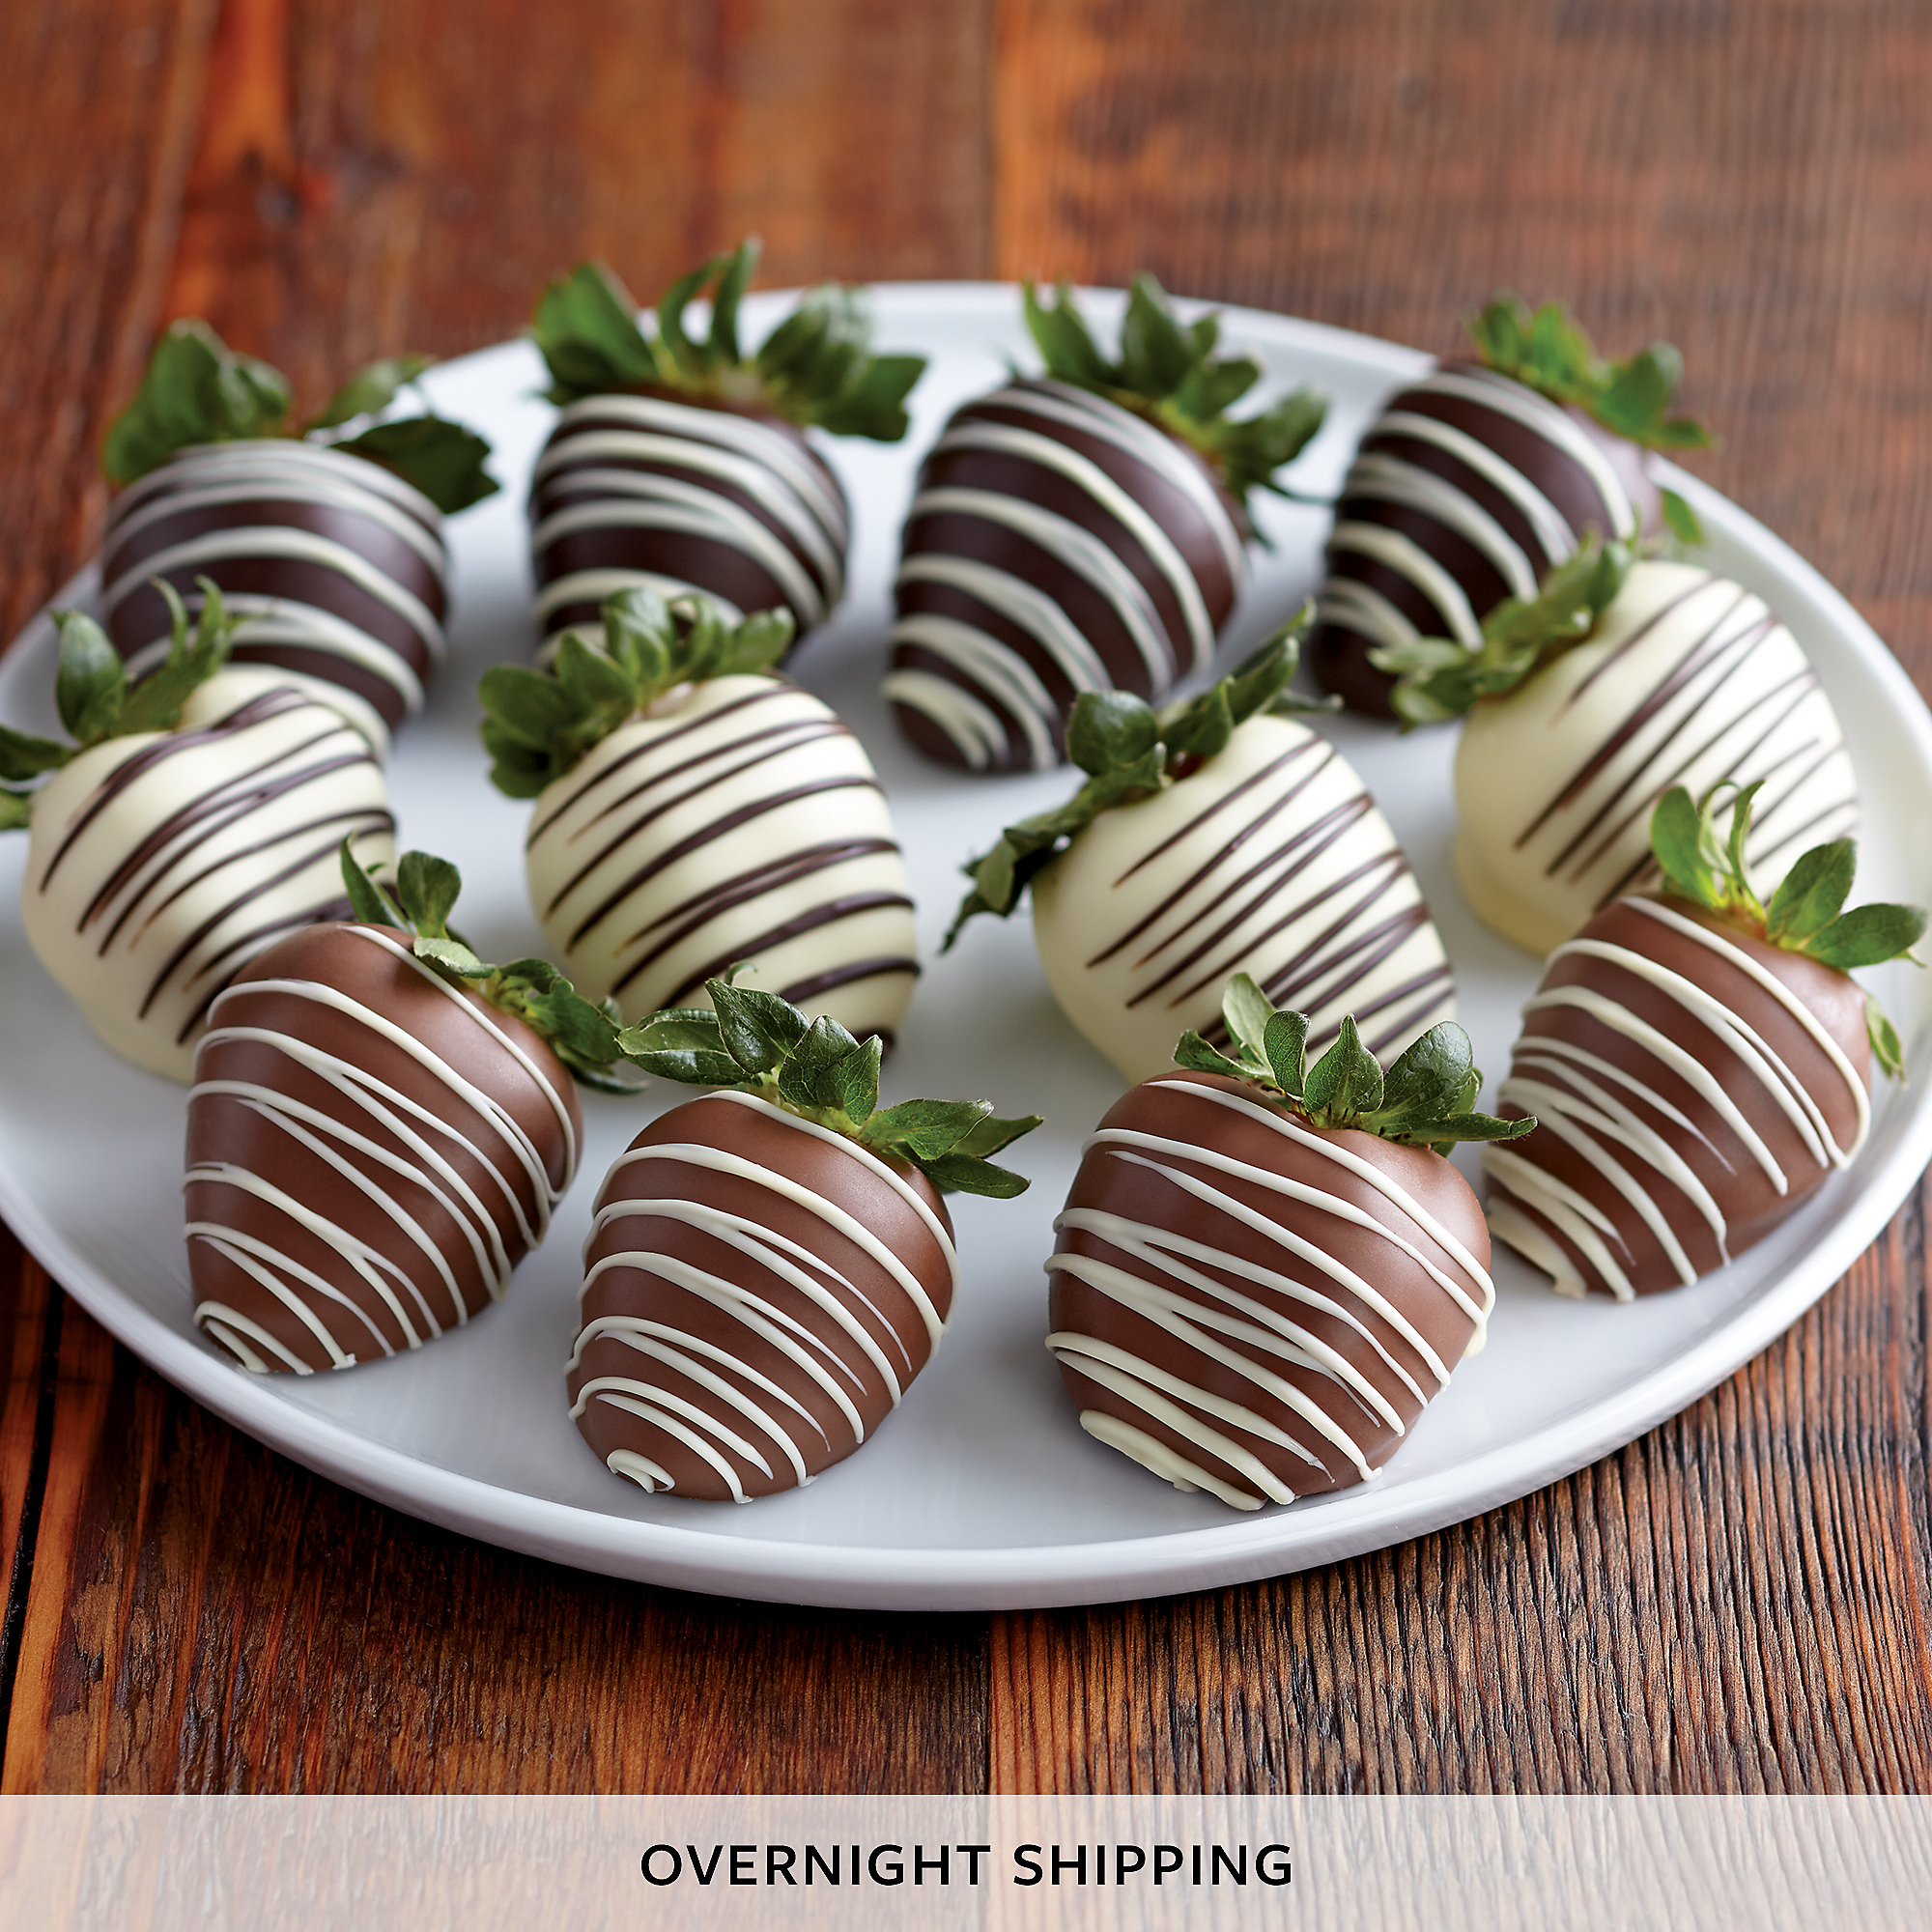 Chocolate-Covered Strawberry Medley